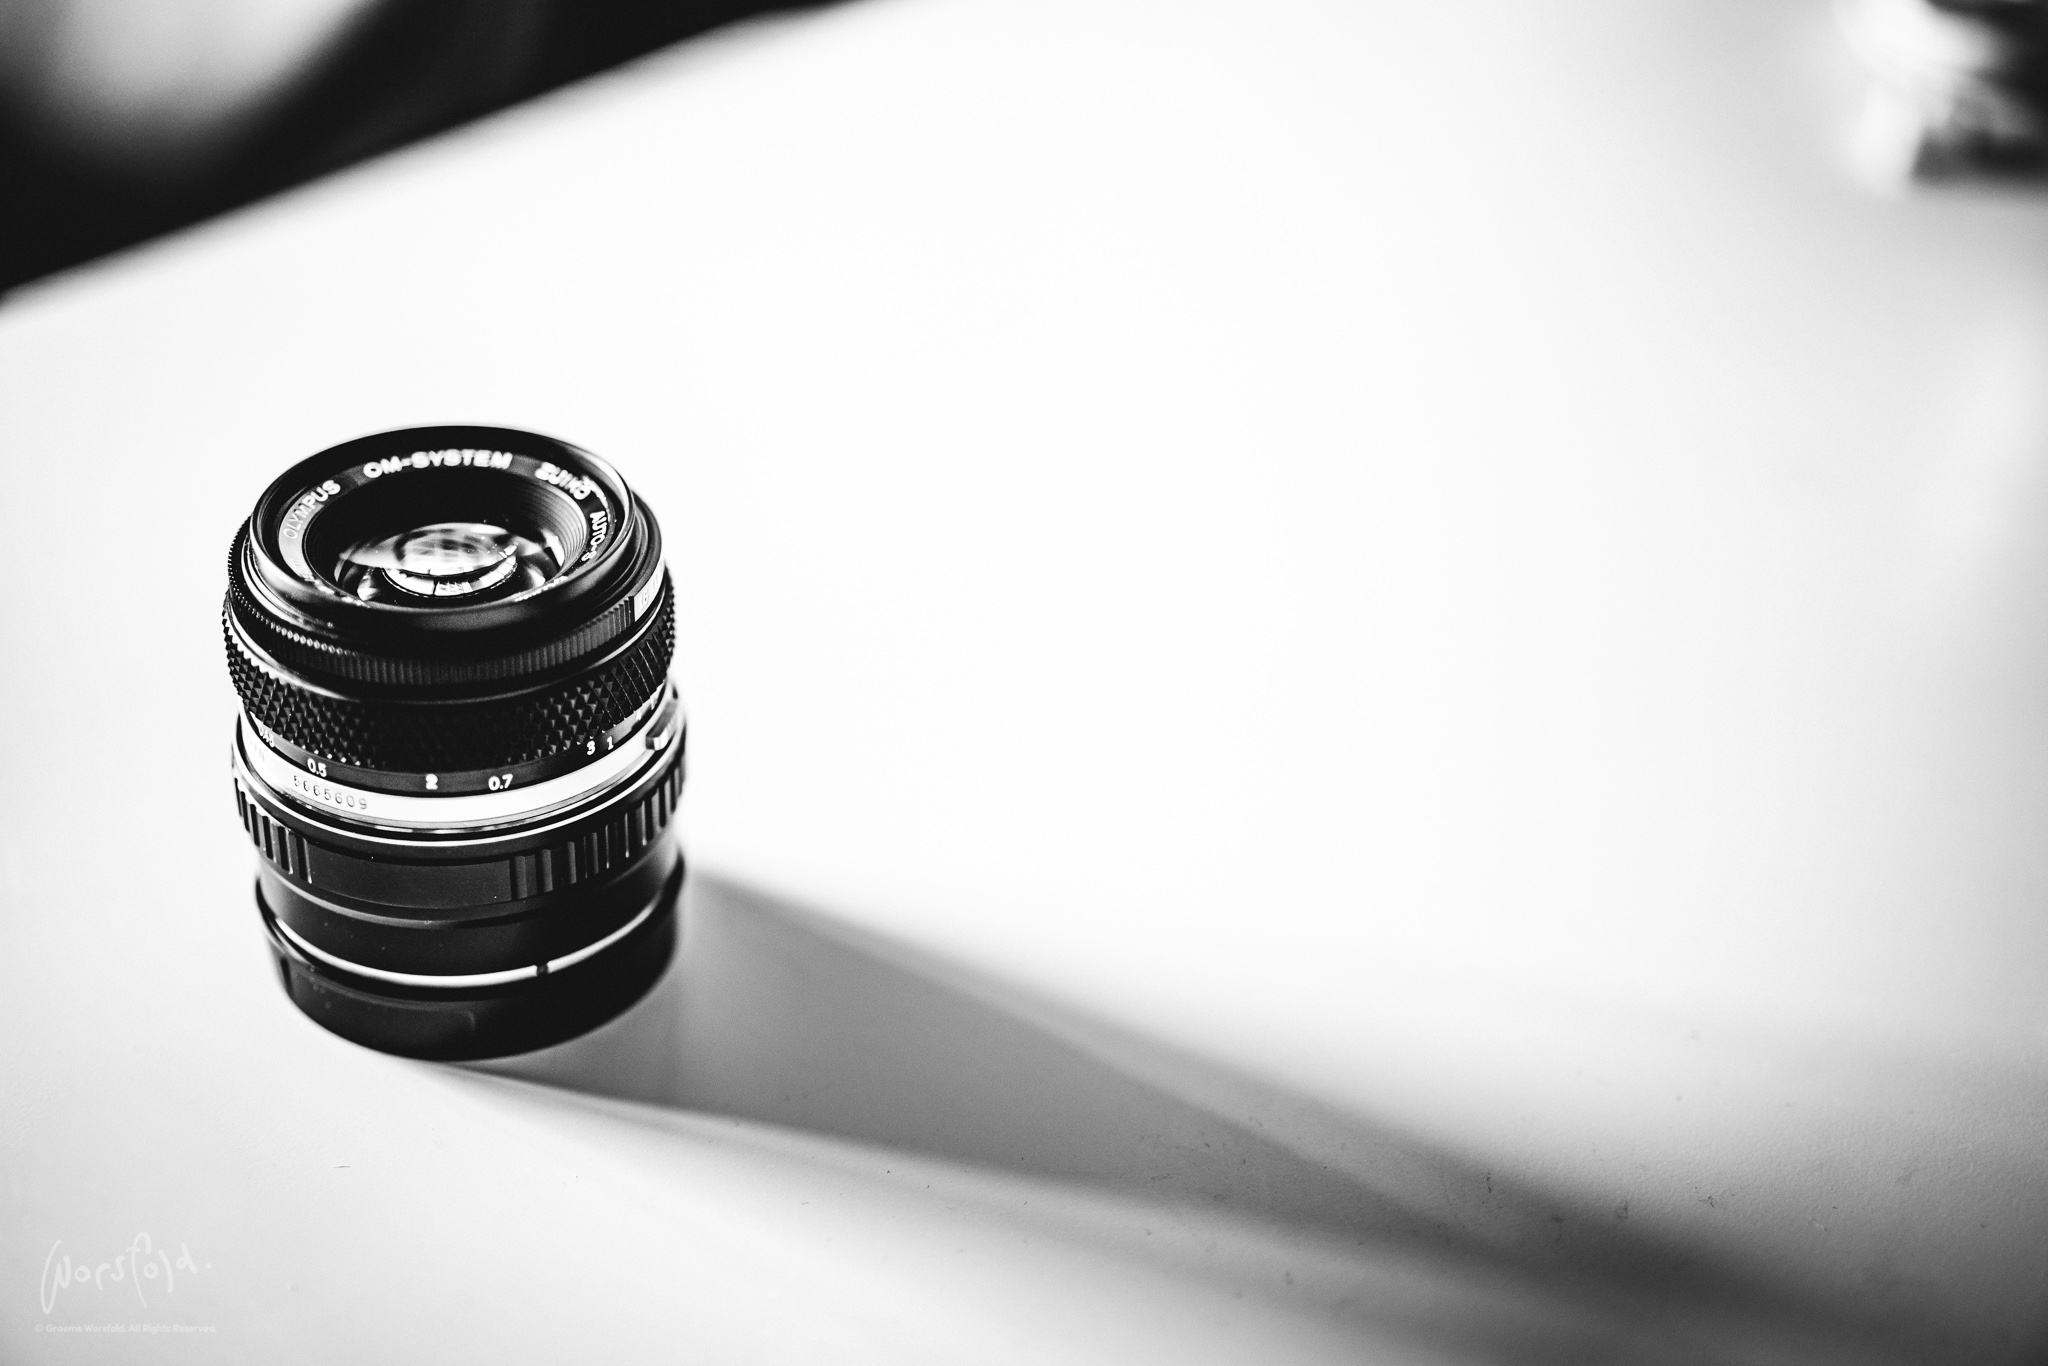 My weapon of choice: the OM-System Zuiko Auto-S 50 mm f/ 1.8